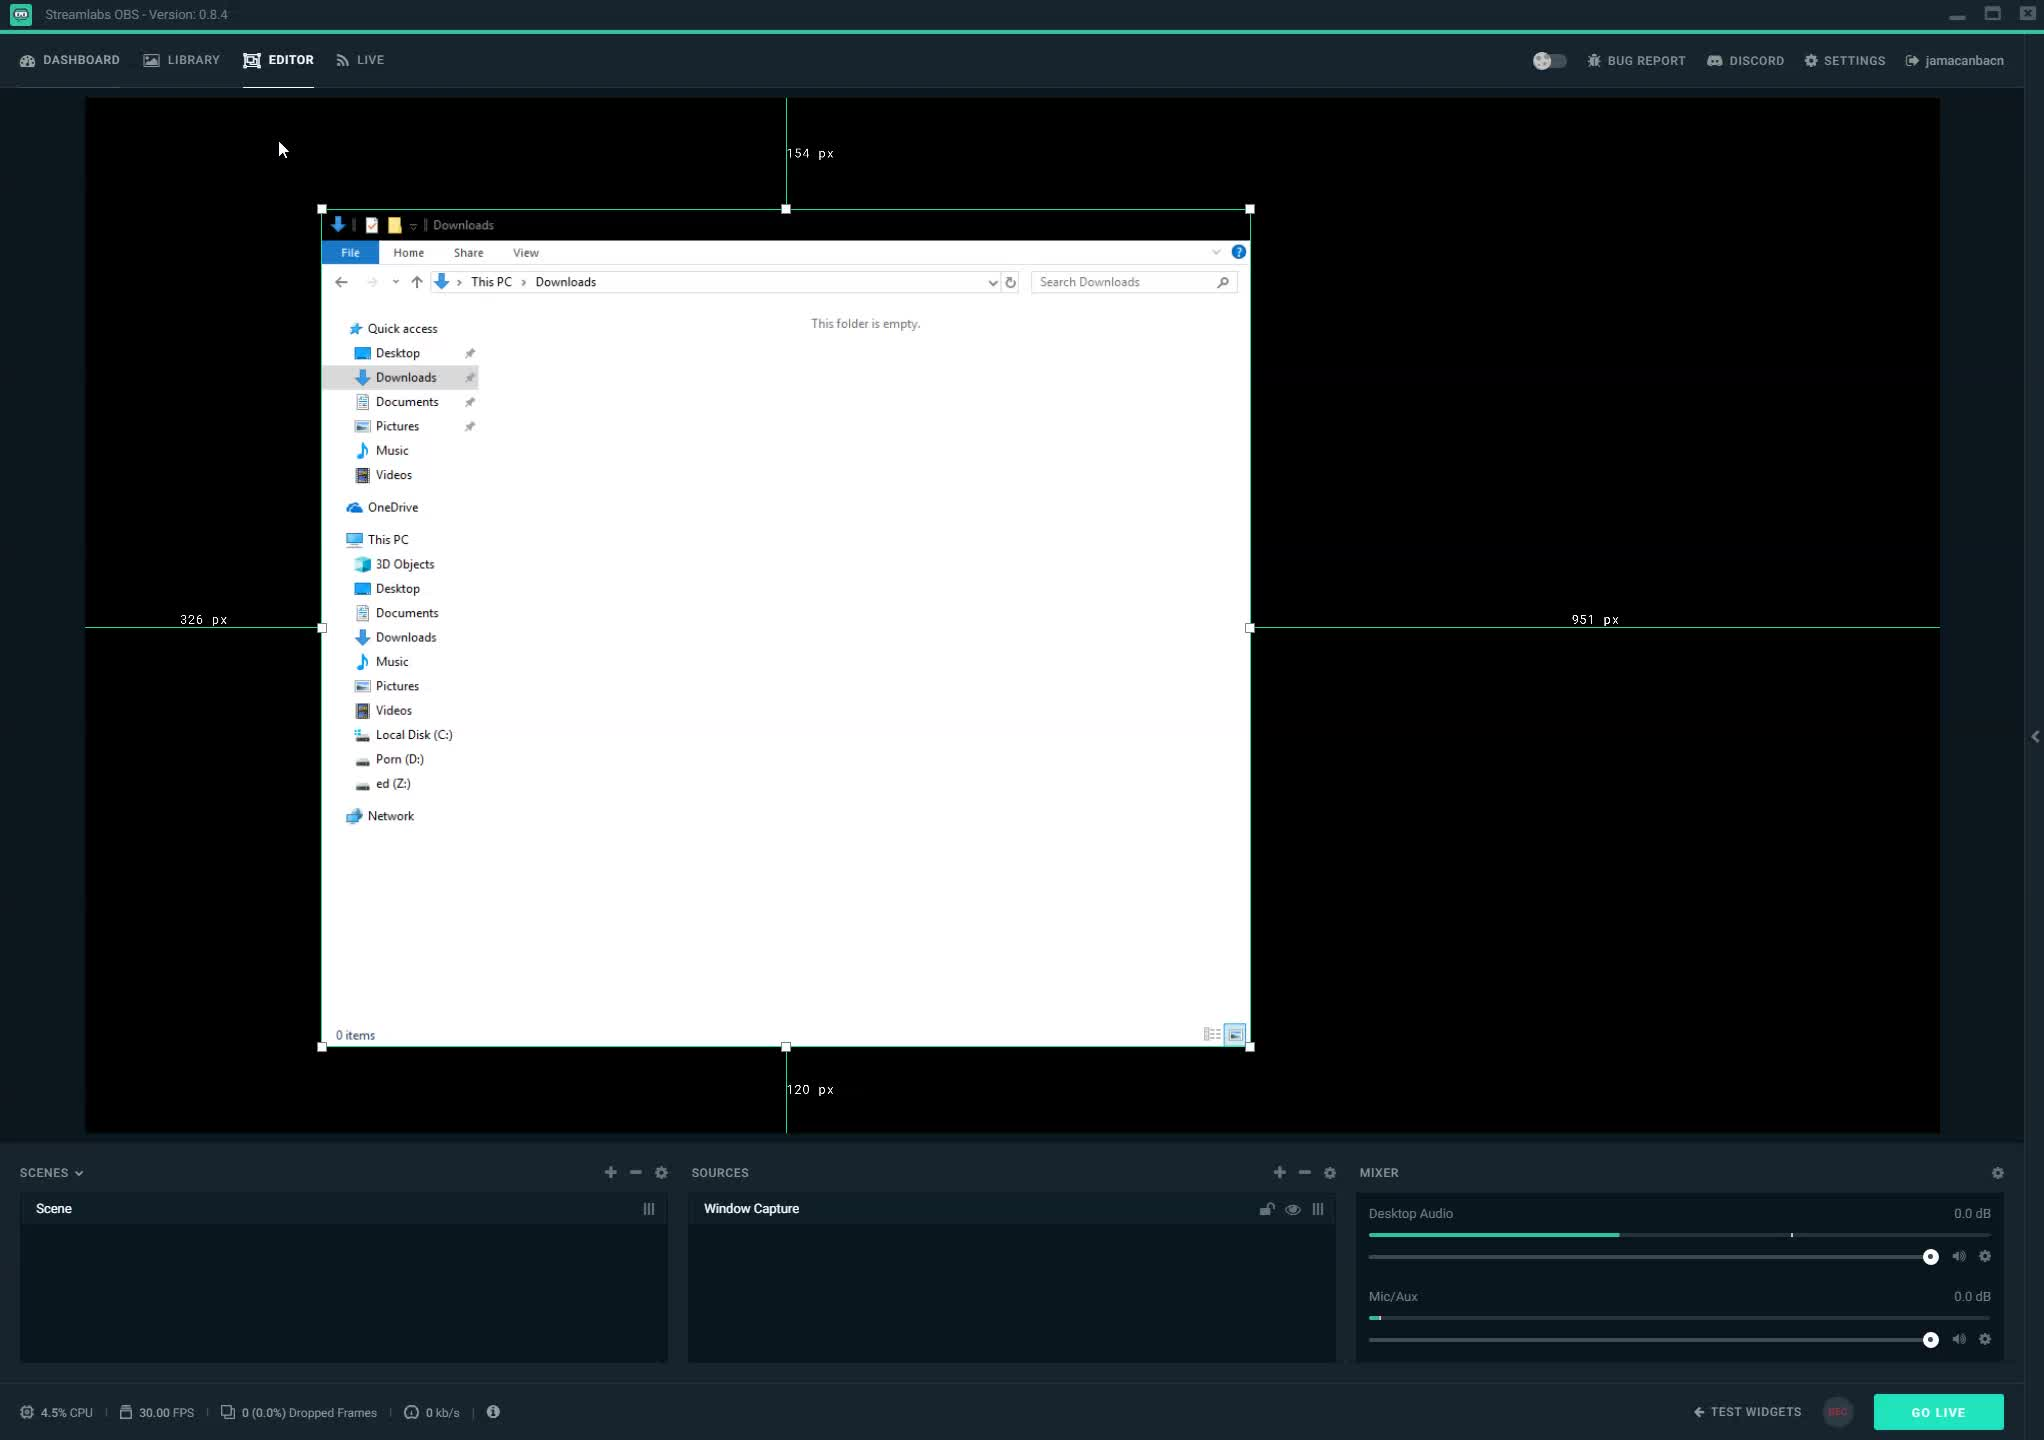 Does Anyone Know How To Crop A Display Capture On The New Streamlabs OBS  Reddit